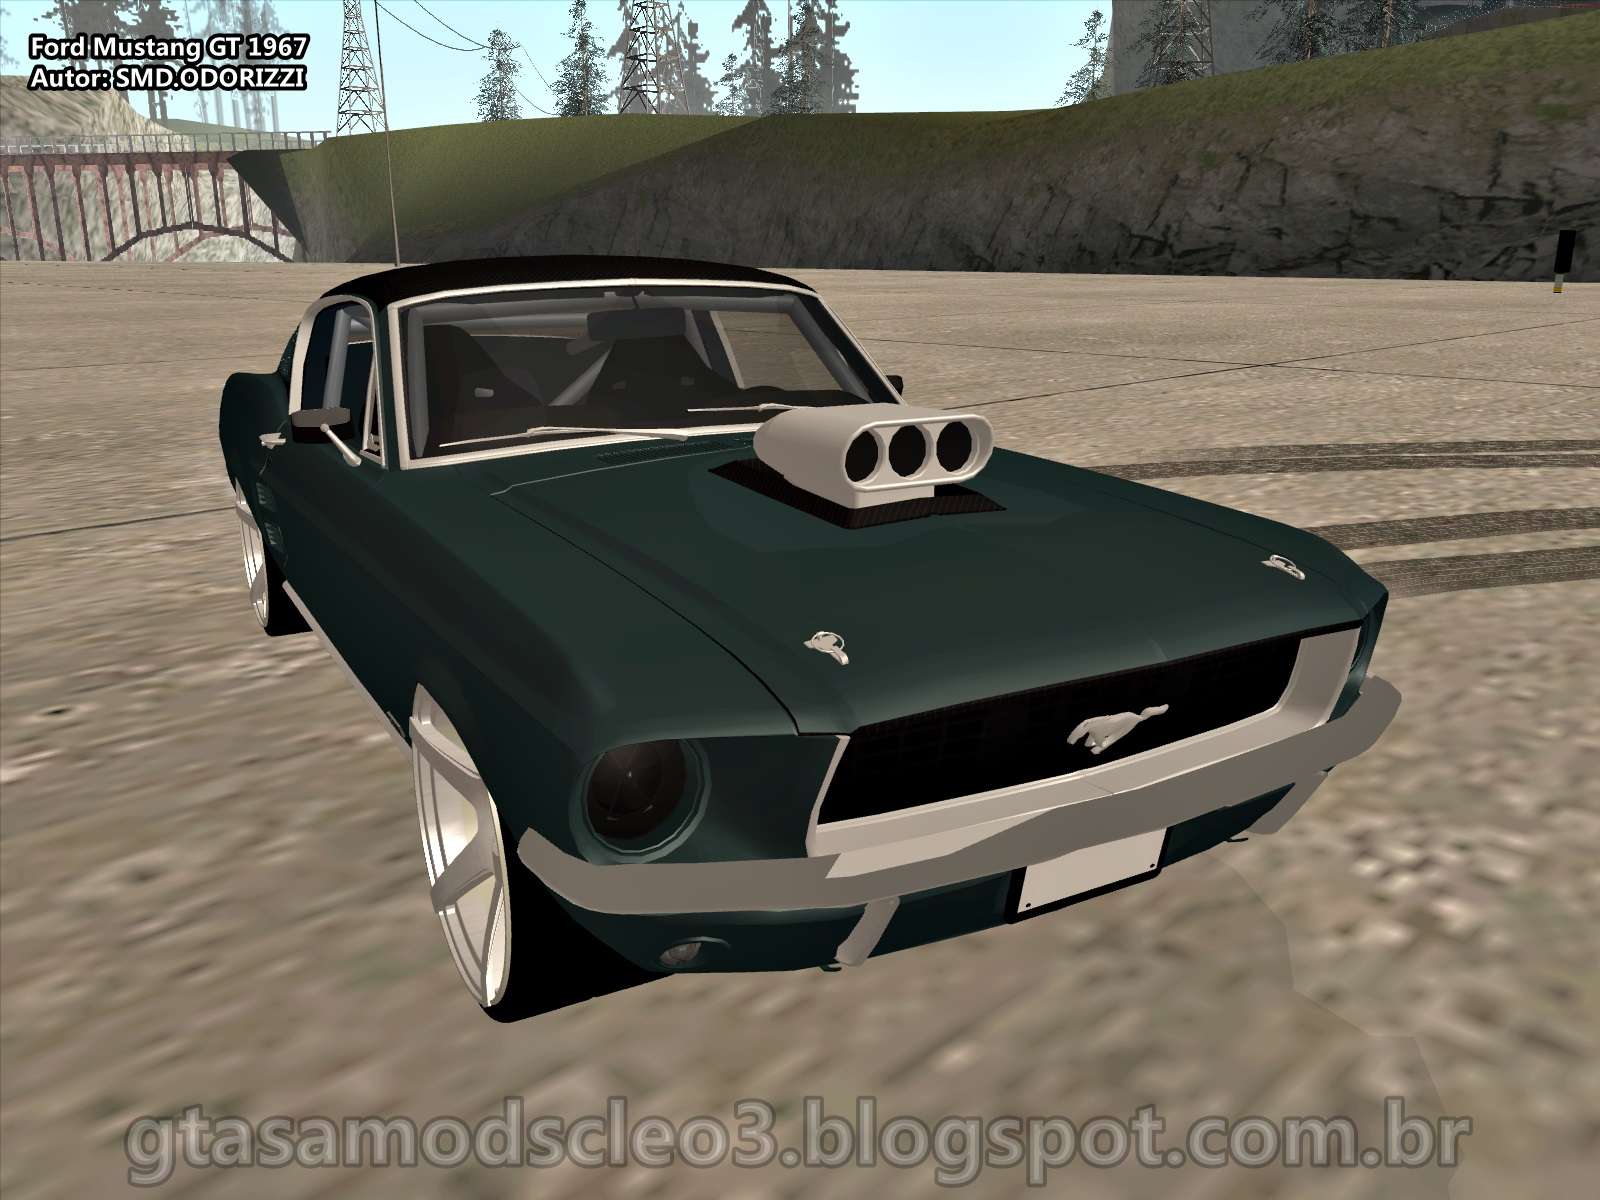 Ford mustang gt 1967 by smd odorizzi